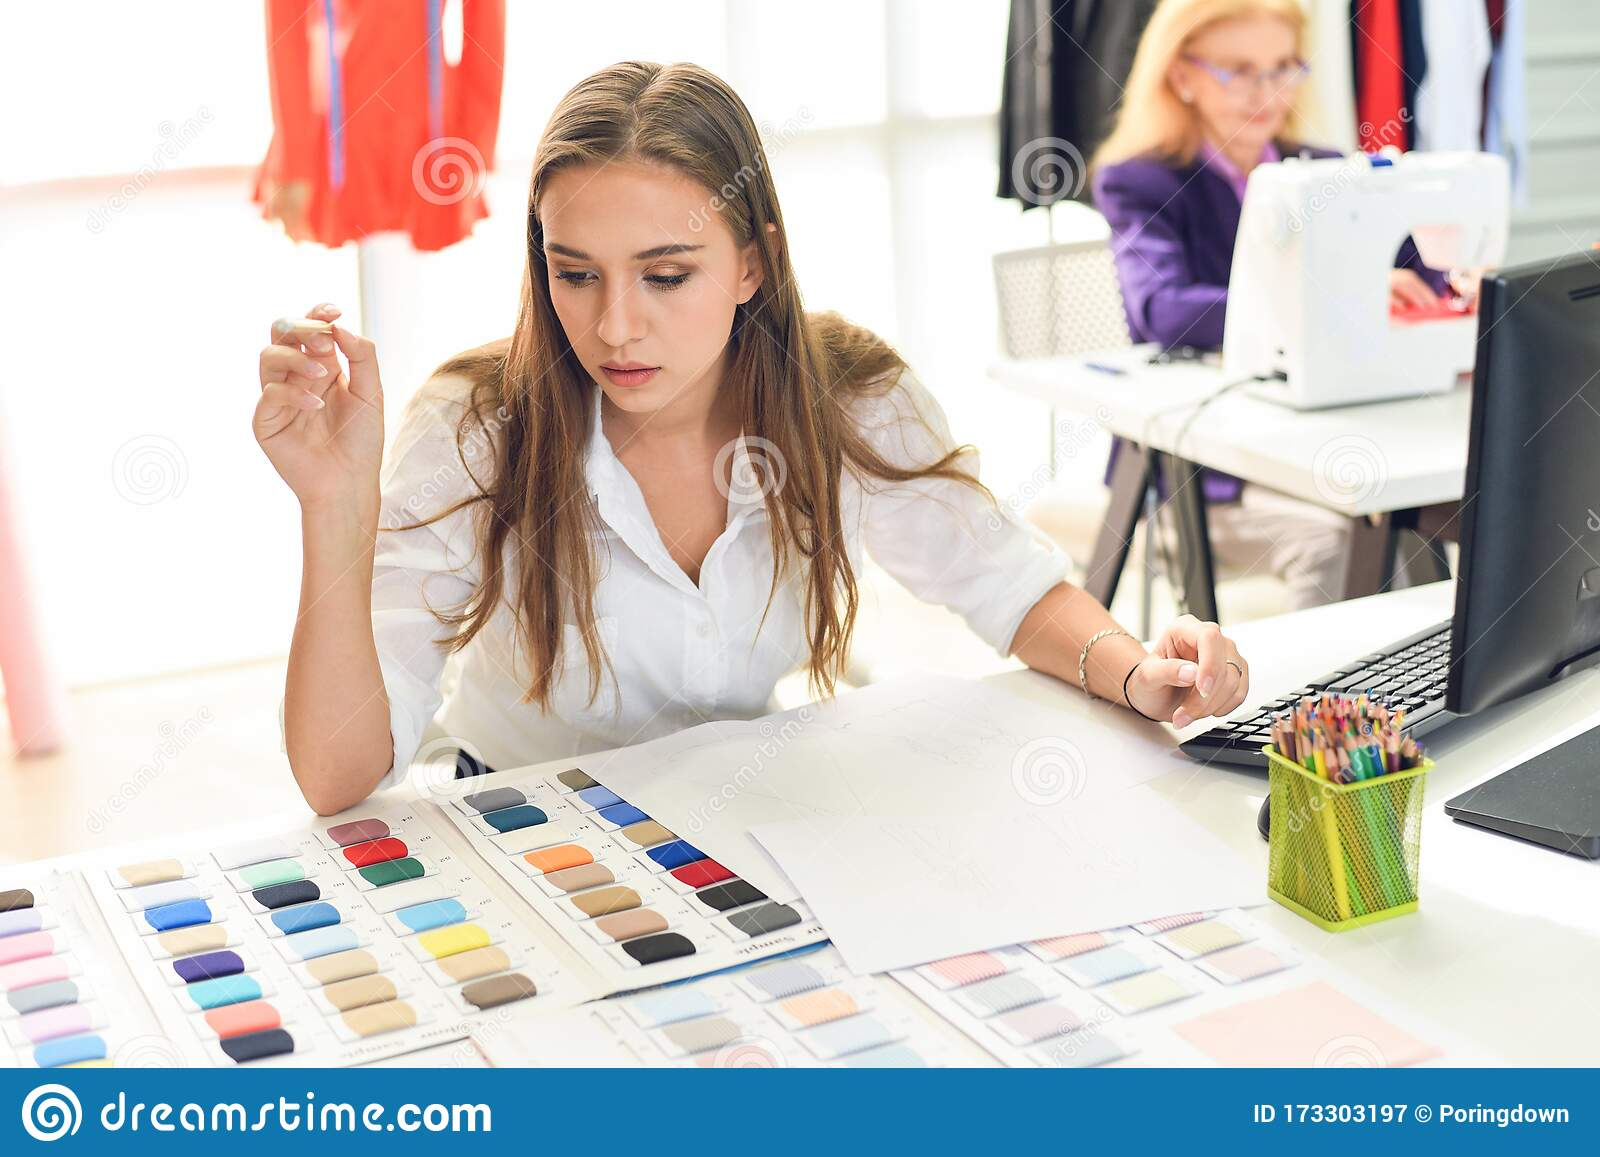 Fashion Designer Studio Measuring Textile Material Scissors Cutting Fabric By Young Woman Designer Stylish Showroom Hanging Stock Image Image Of Girl Equipment 173303197